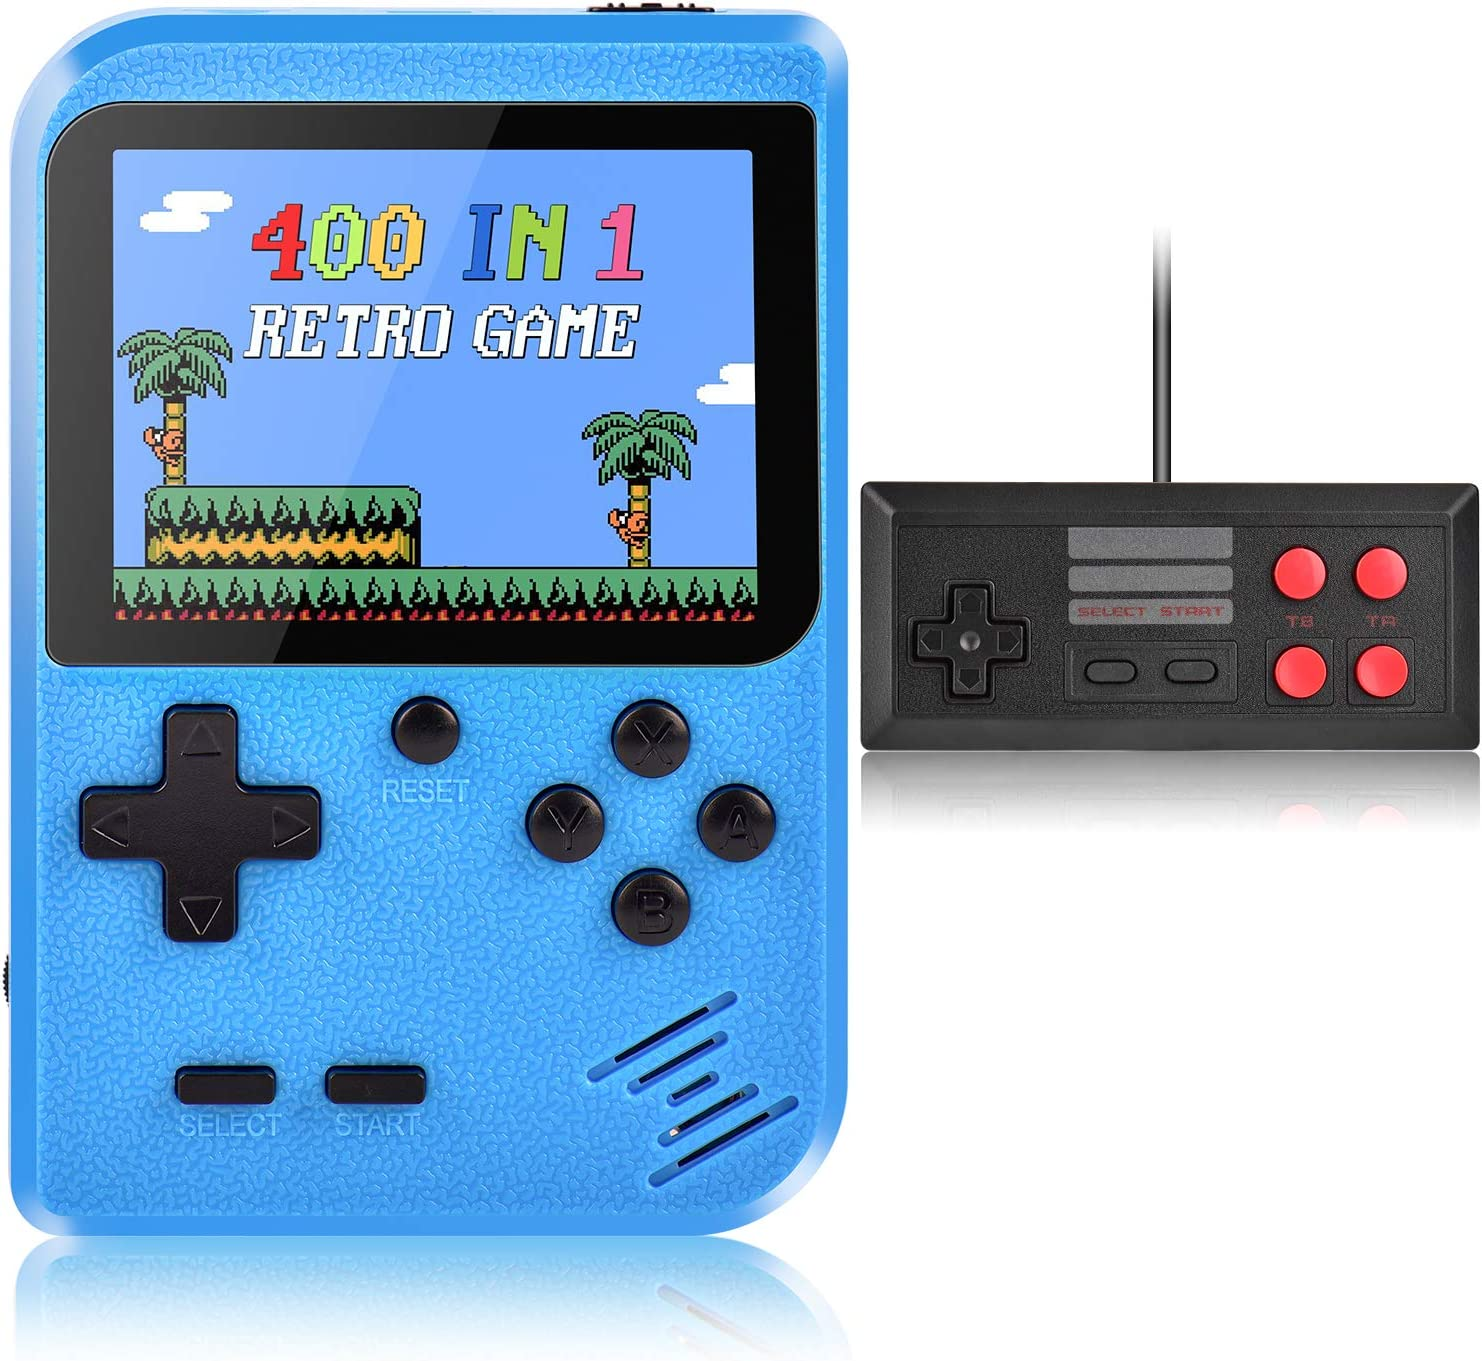 Handheld Game Console, Kiztoys Retro Video Games Console for kids with 400 Classic Games, Supporting 2 Players and TV Connection,...